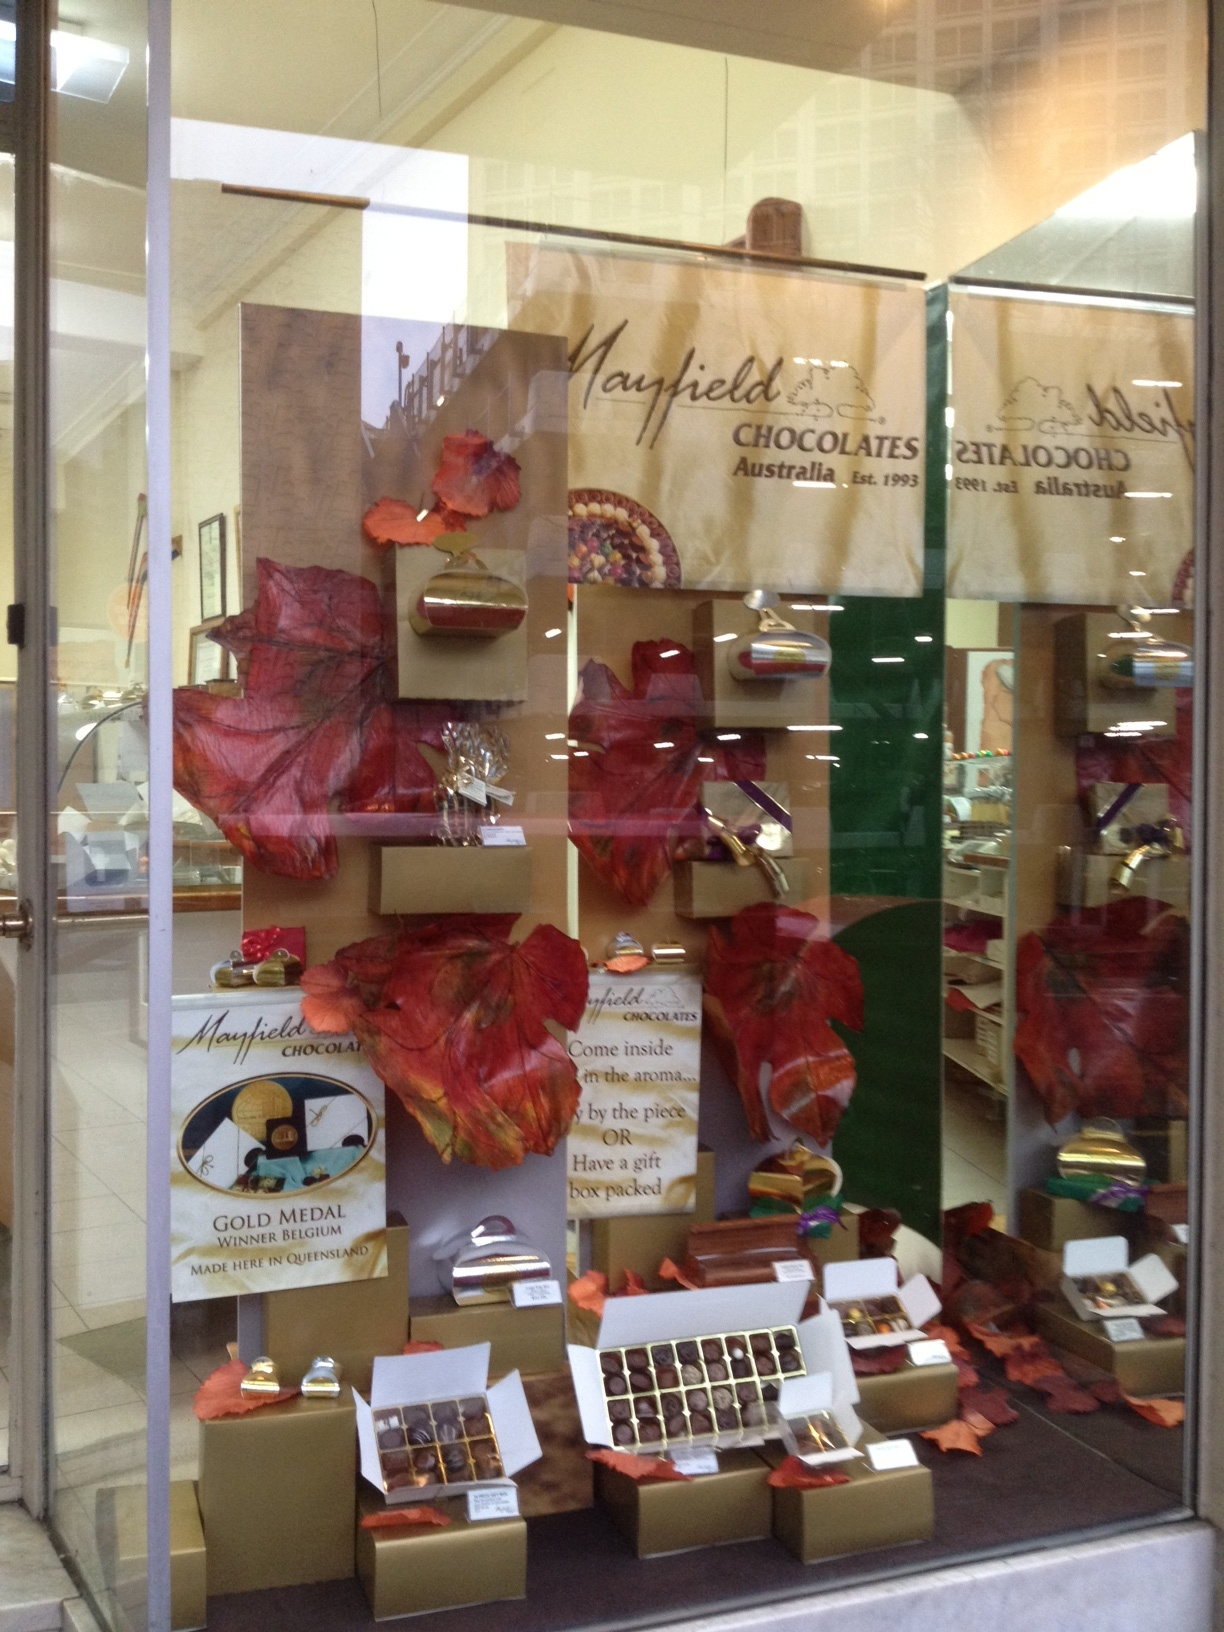 Brisbane's most delicious Chocolates and Visual Merchandising to match. Thank you Mark Reese.